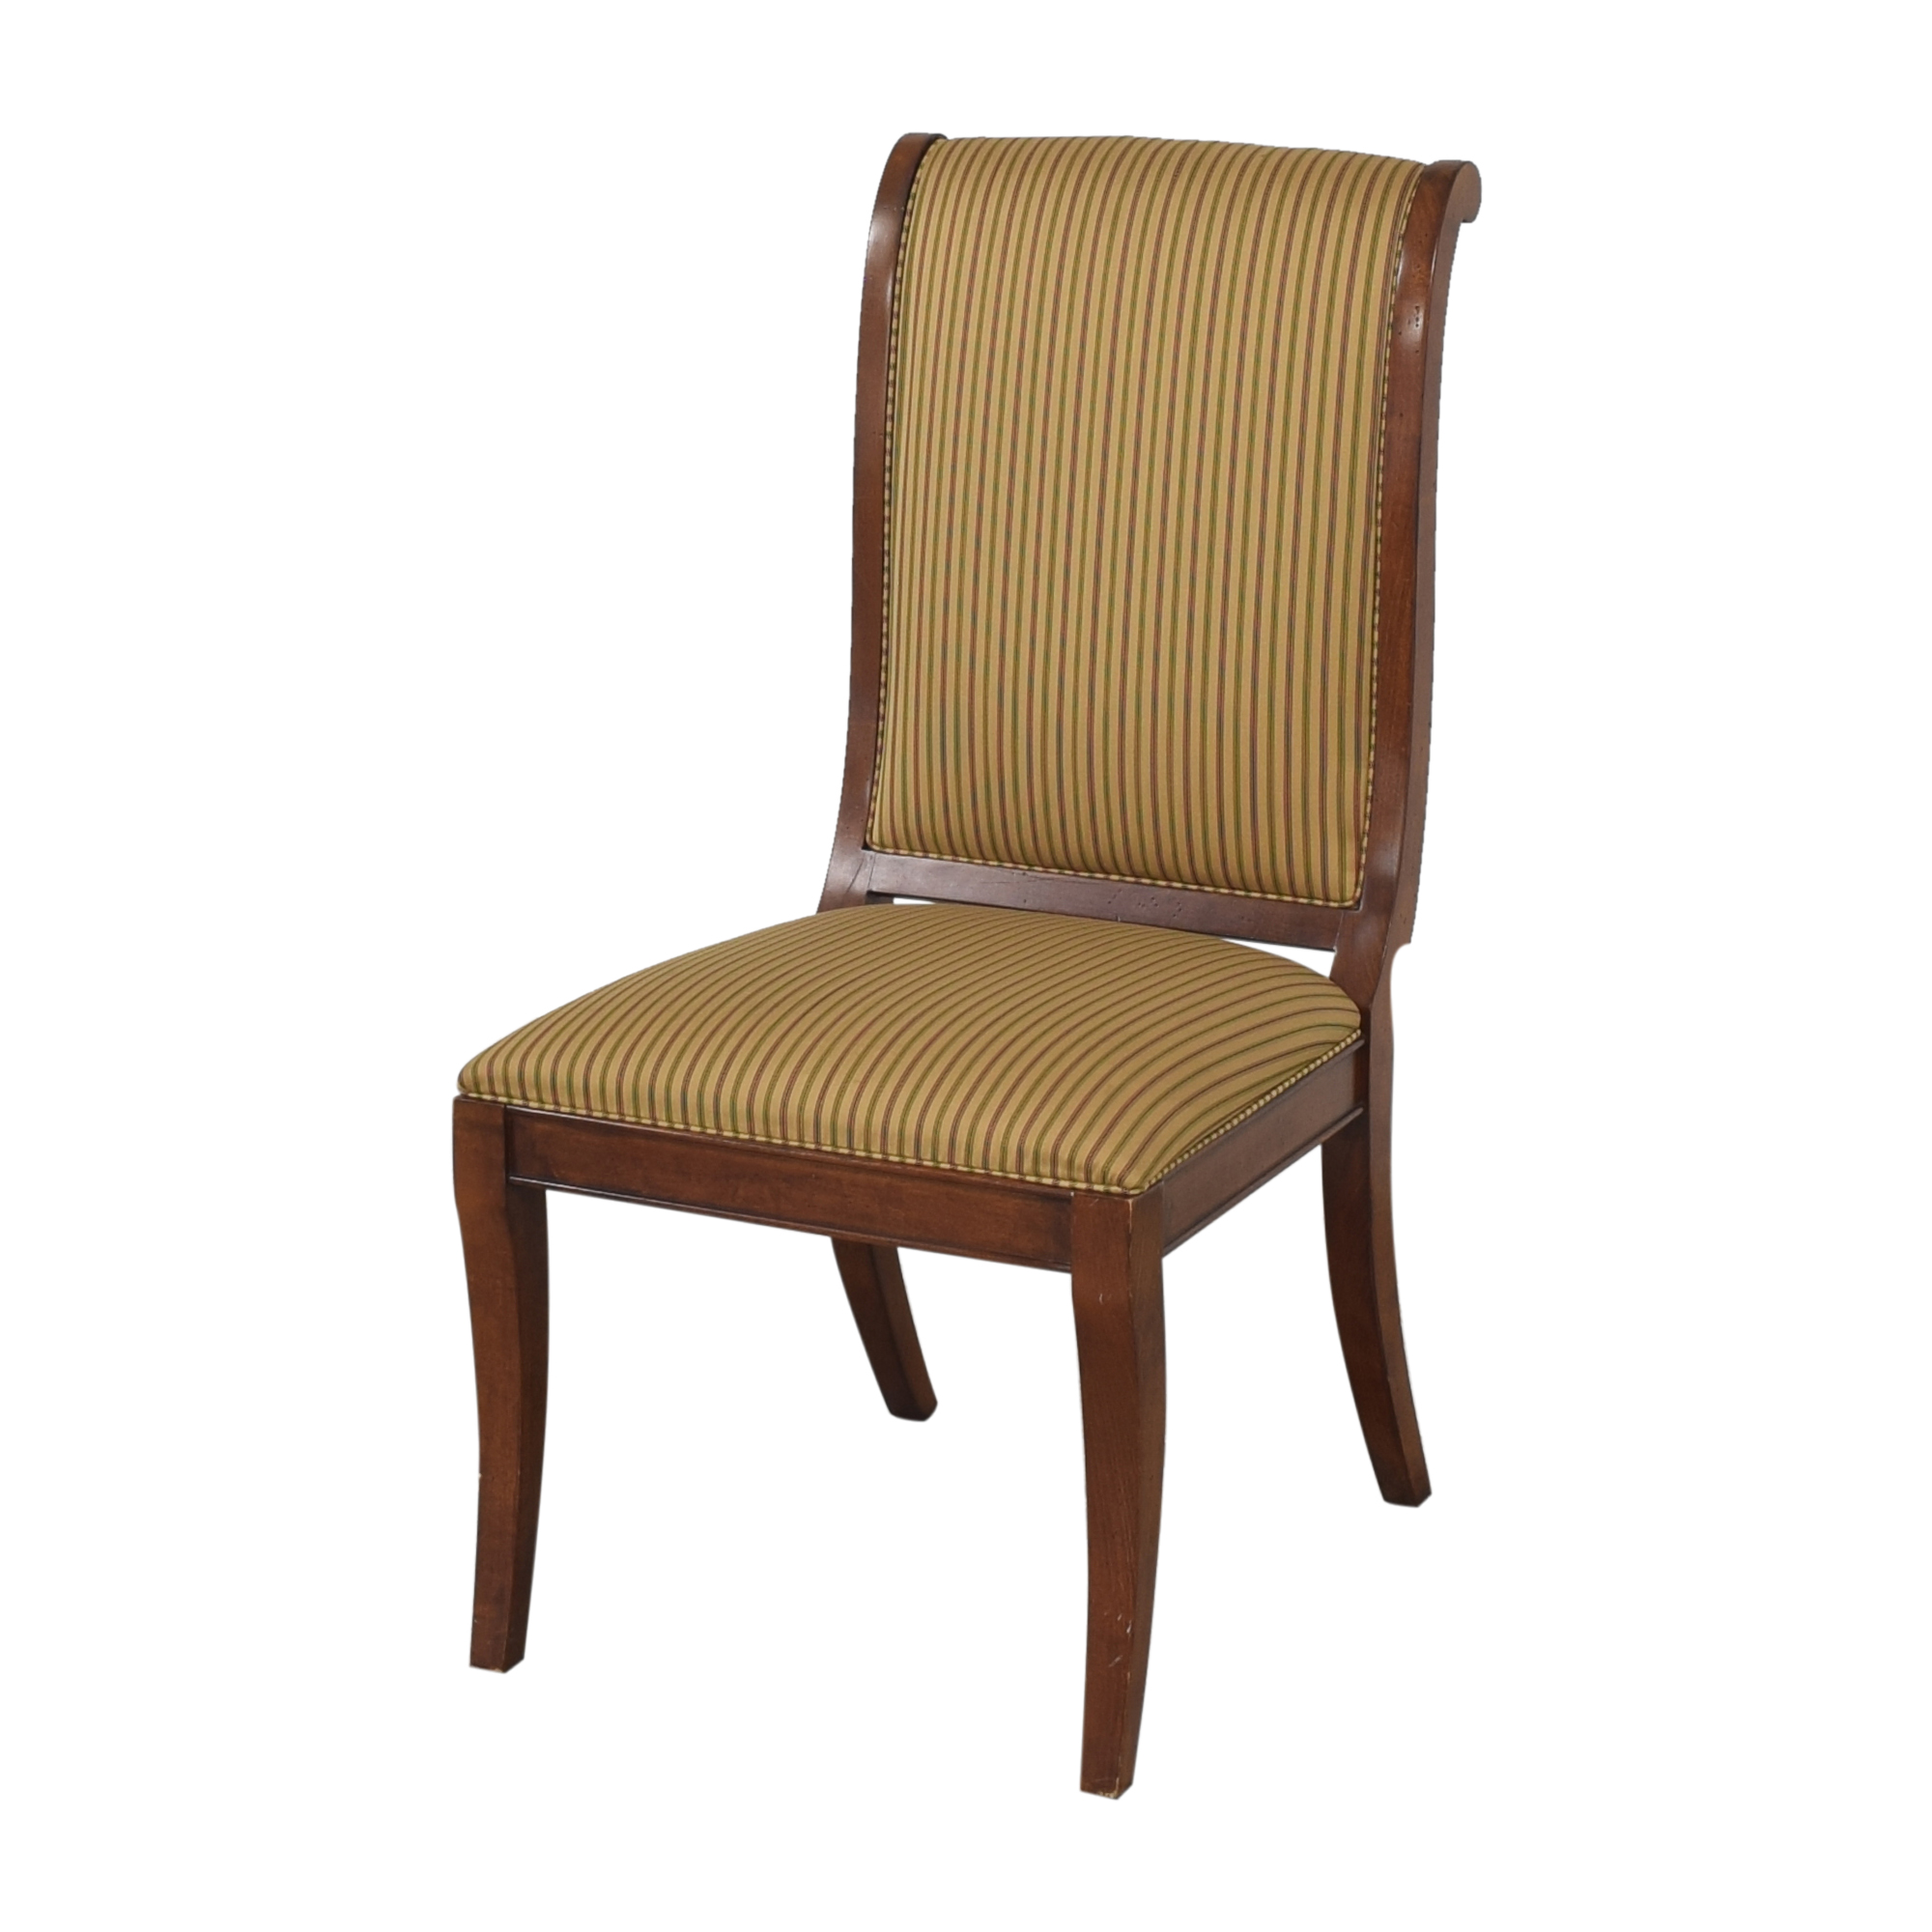 Drexel Heritage Drexel Heritage Upholstered Dining Chairs for sale